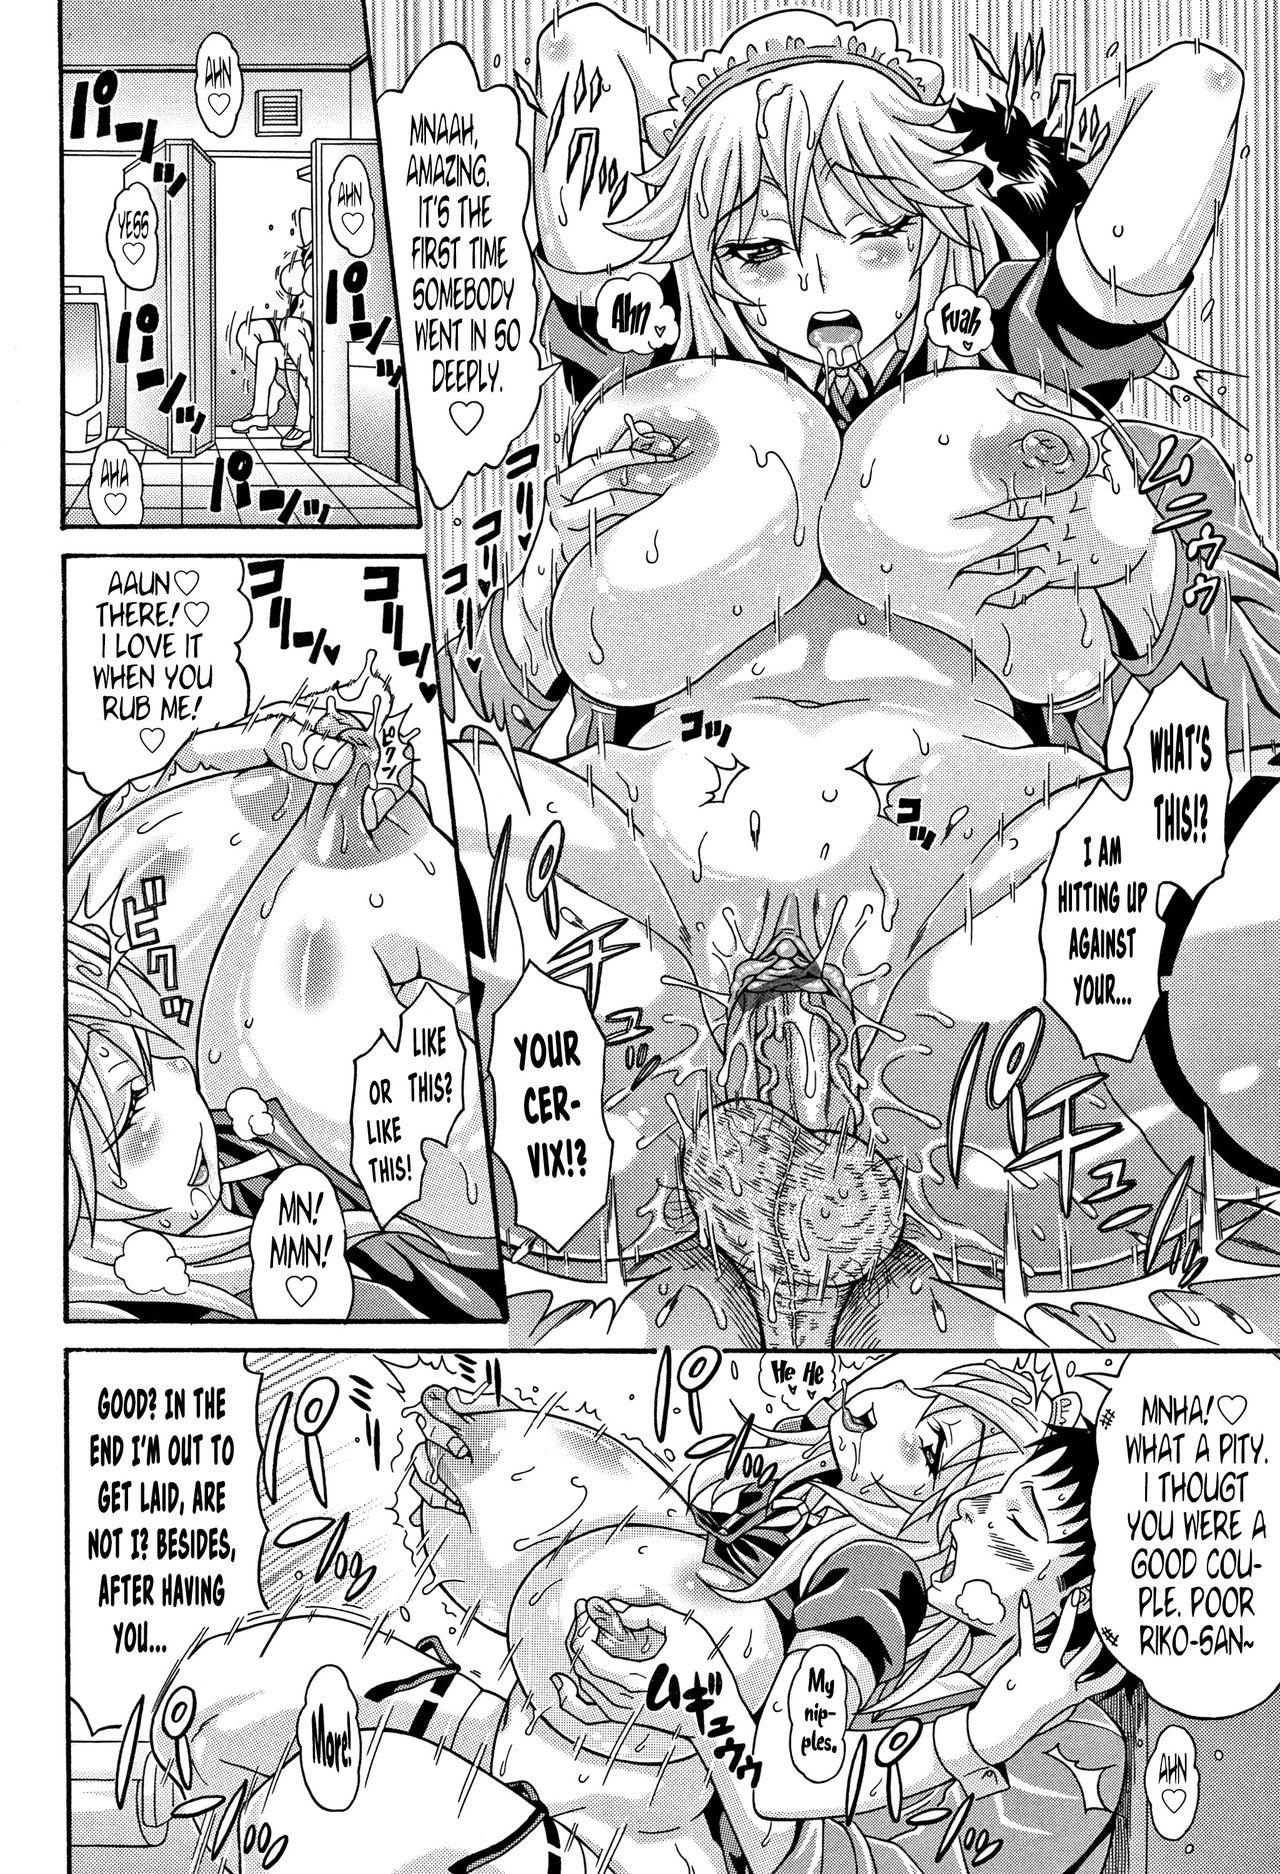 [Andou Hiroyuki] Mamire Chichi - Sticky Tits Feel Hot All Over. Ch.1-7 [English] [doujin-moe.us] 84